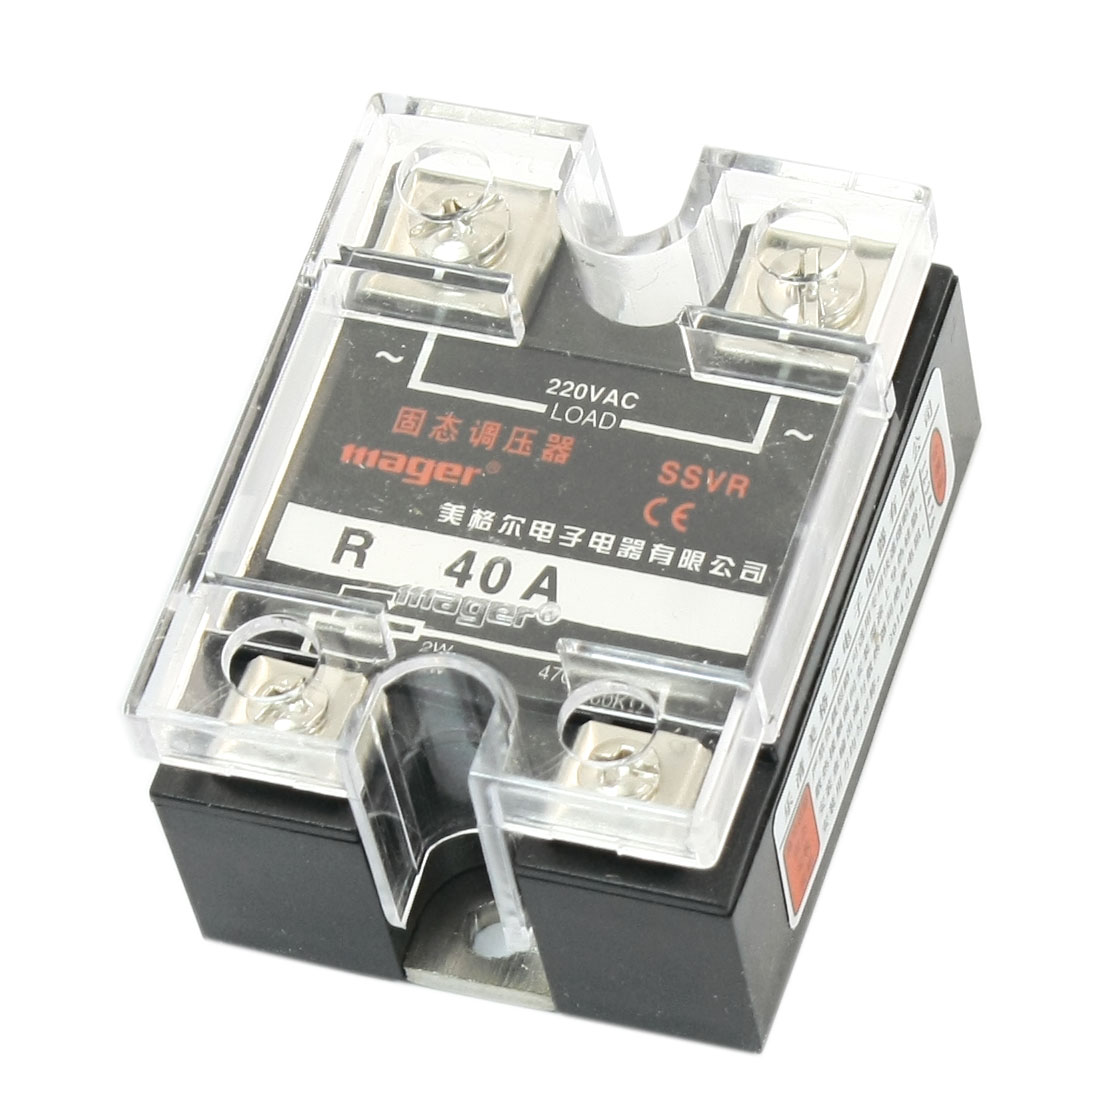 AC220V 40A 2W 470-560K Ohm Resistance Type Single Phase SSR Voltage Regulator SSVR